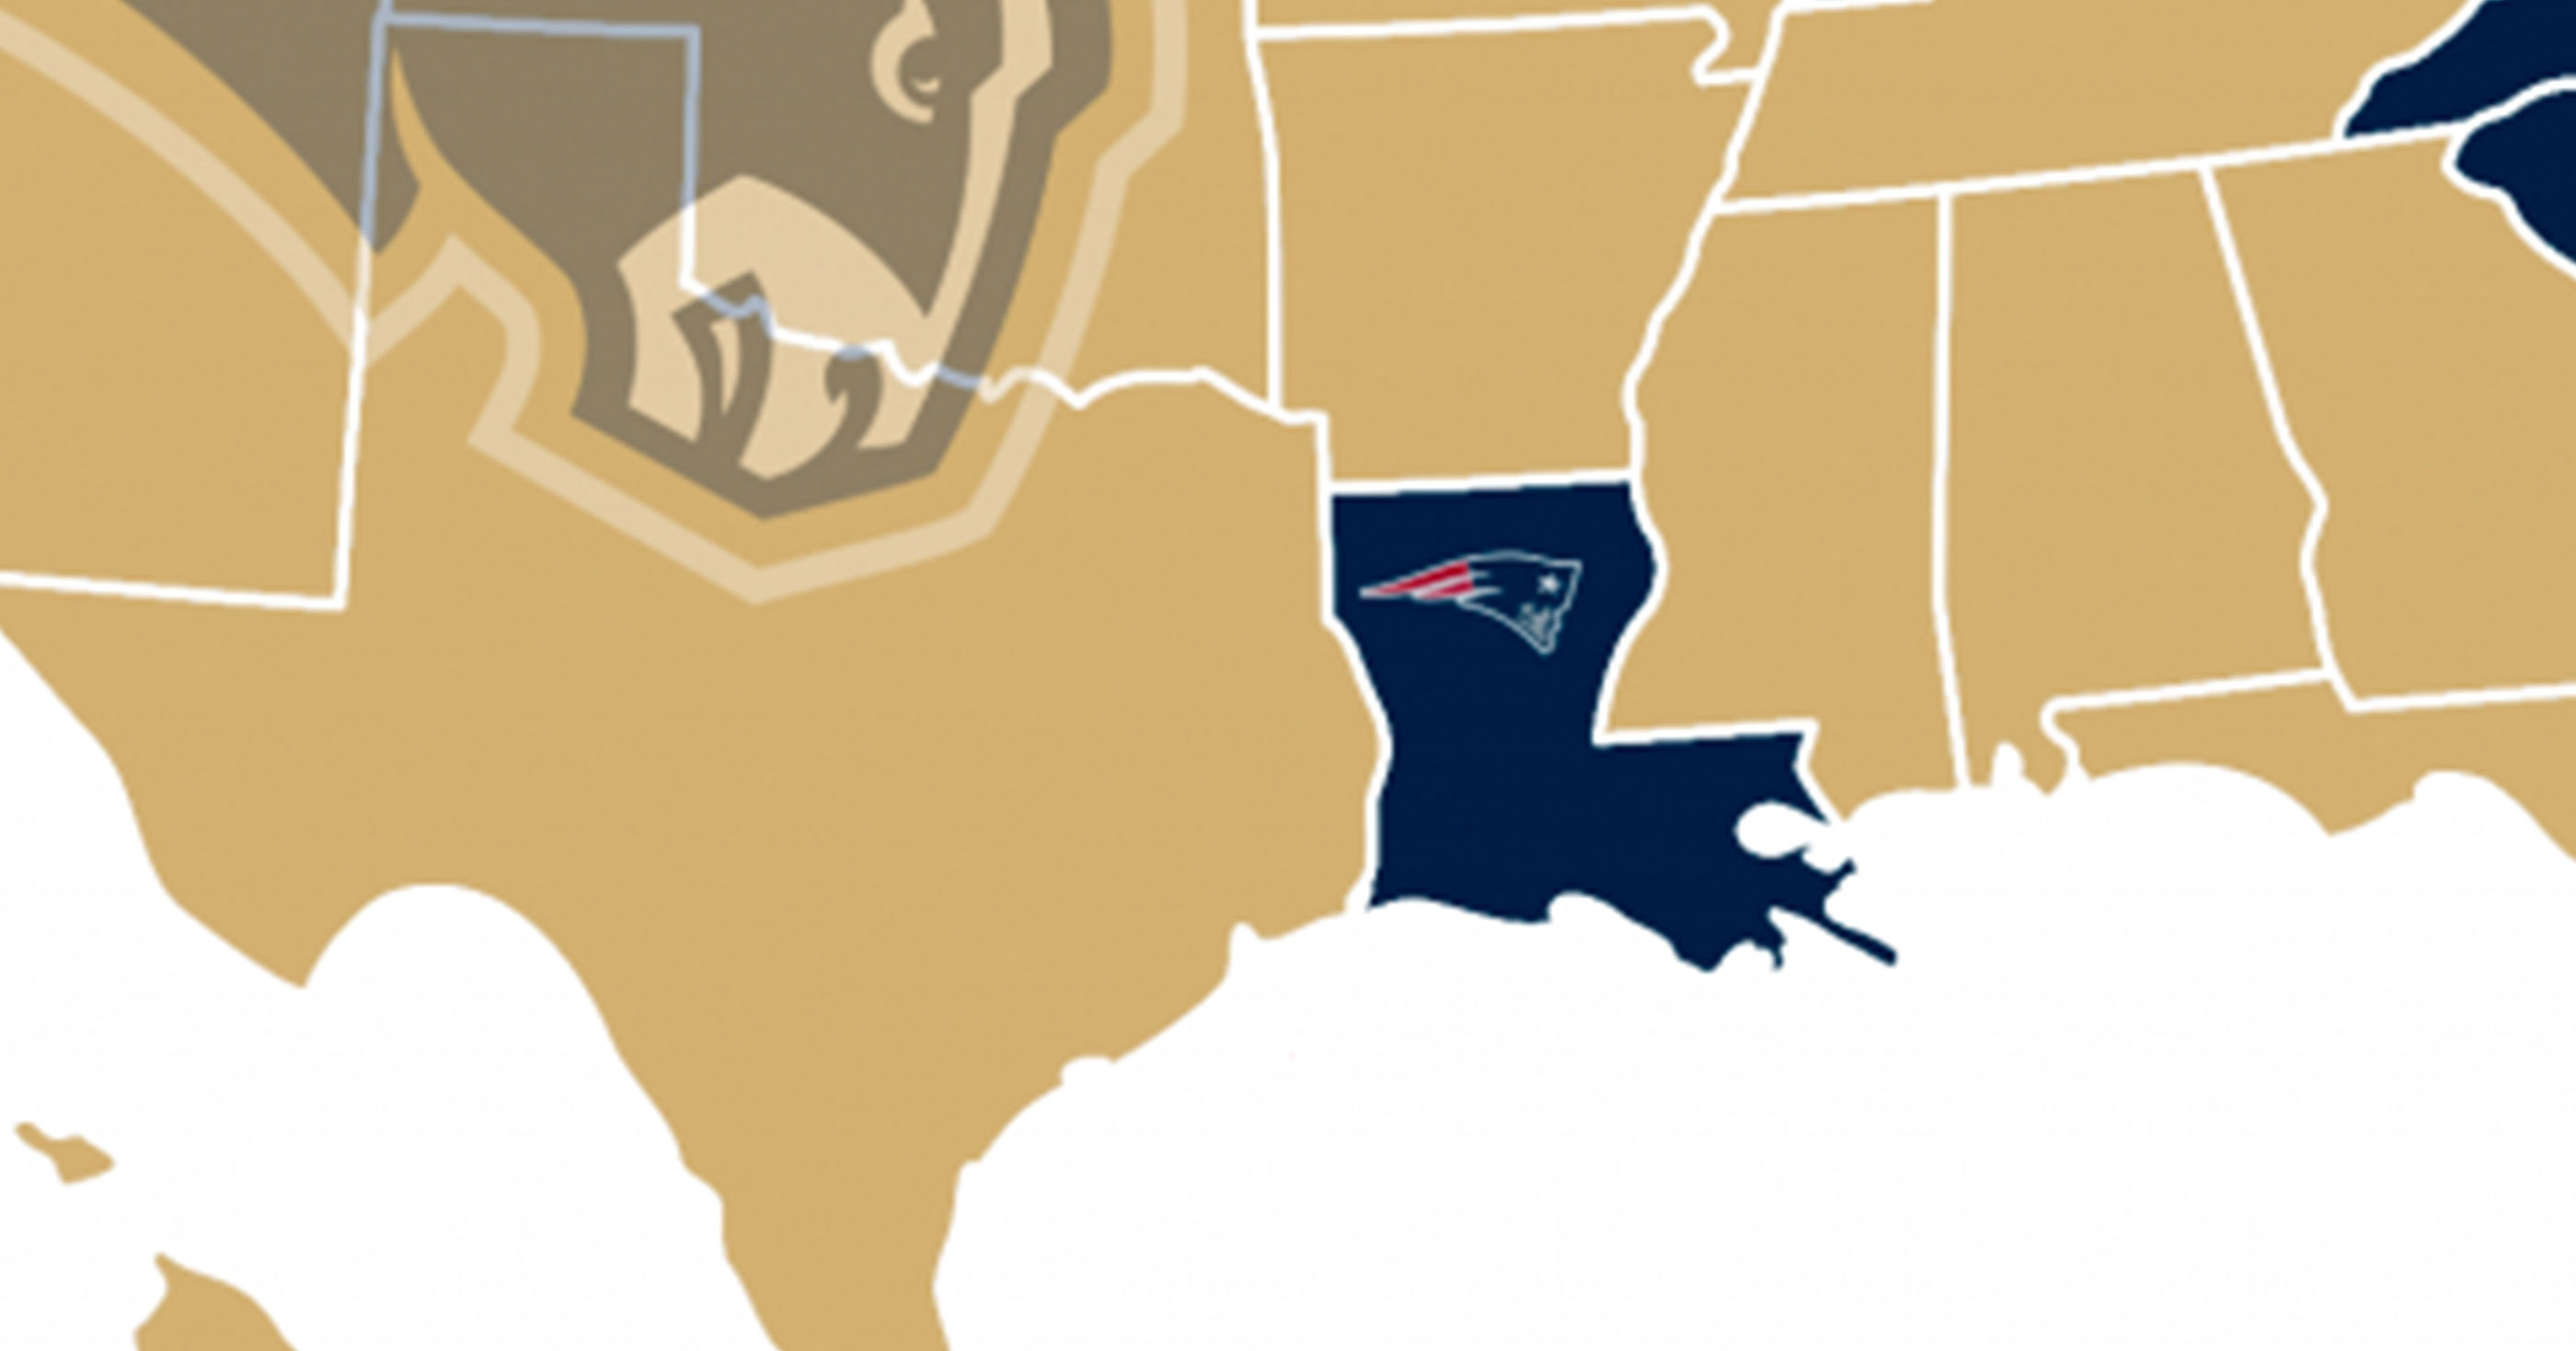 Map Shows Which Team Each State Is Rooting For In Super Bowl intended for Super Bowl 53 Rooting Map